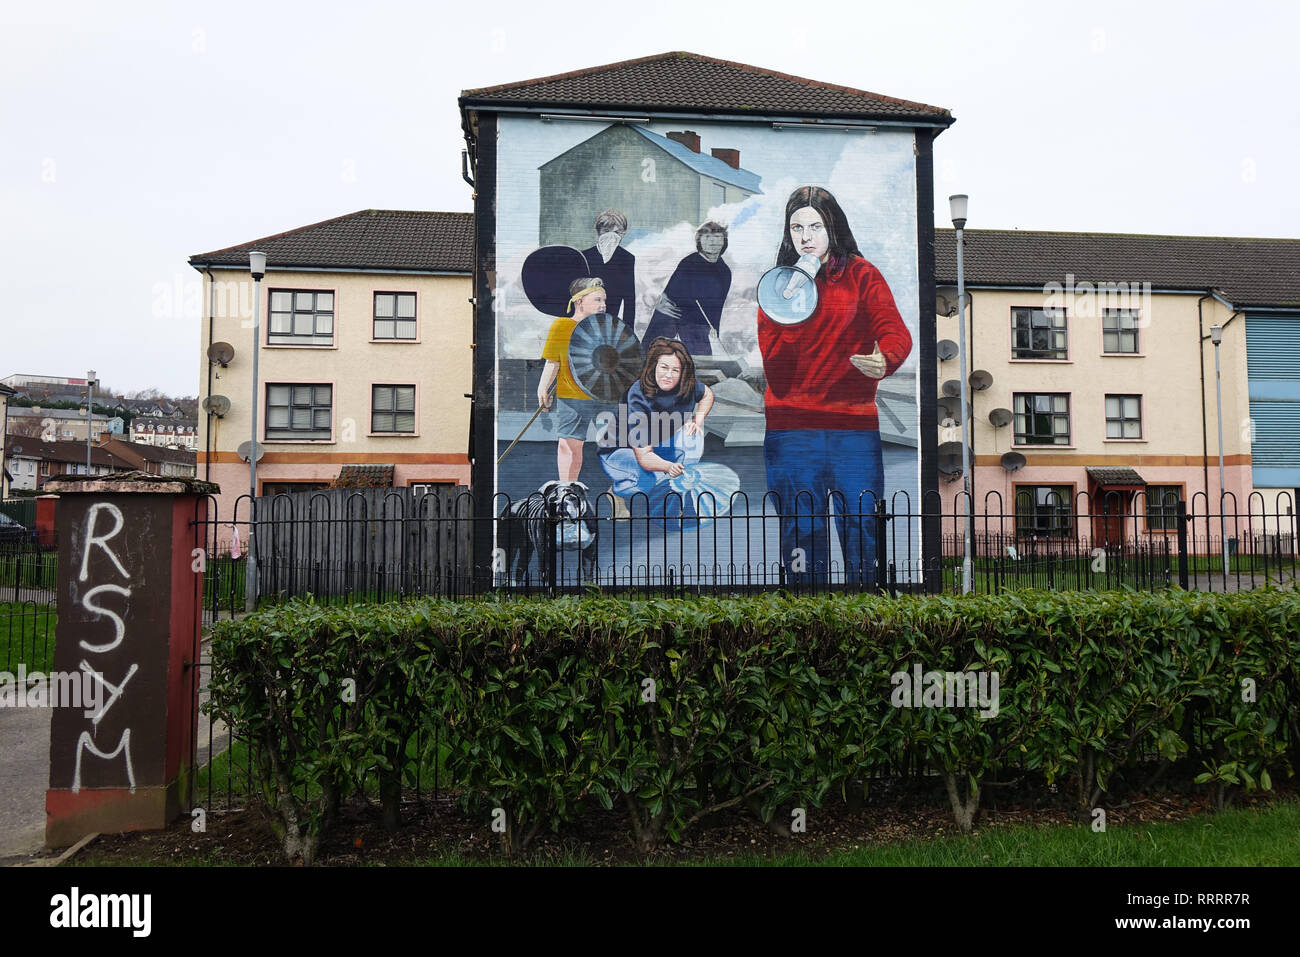 The Bogside in Derry, Northern Ireland - Stock Image